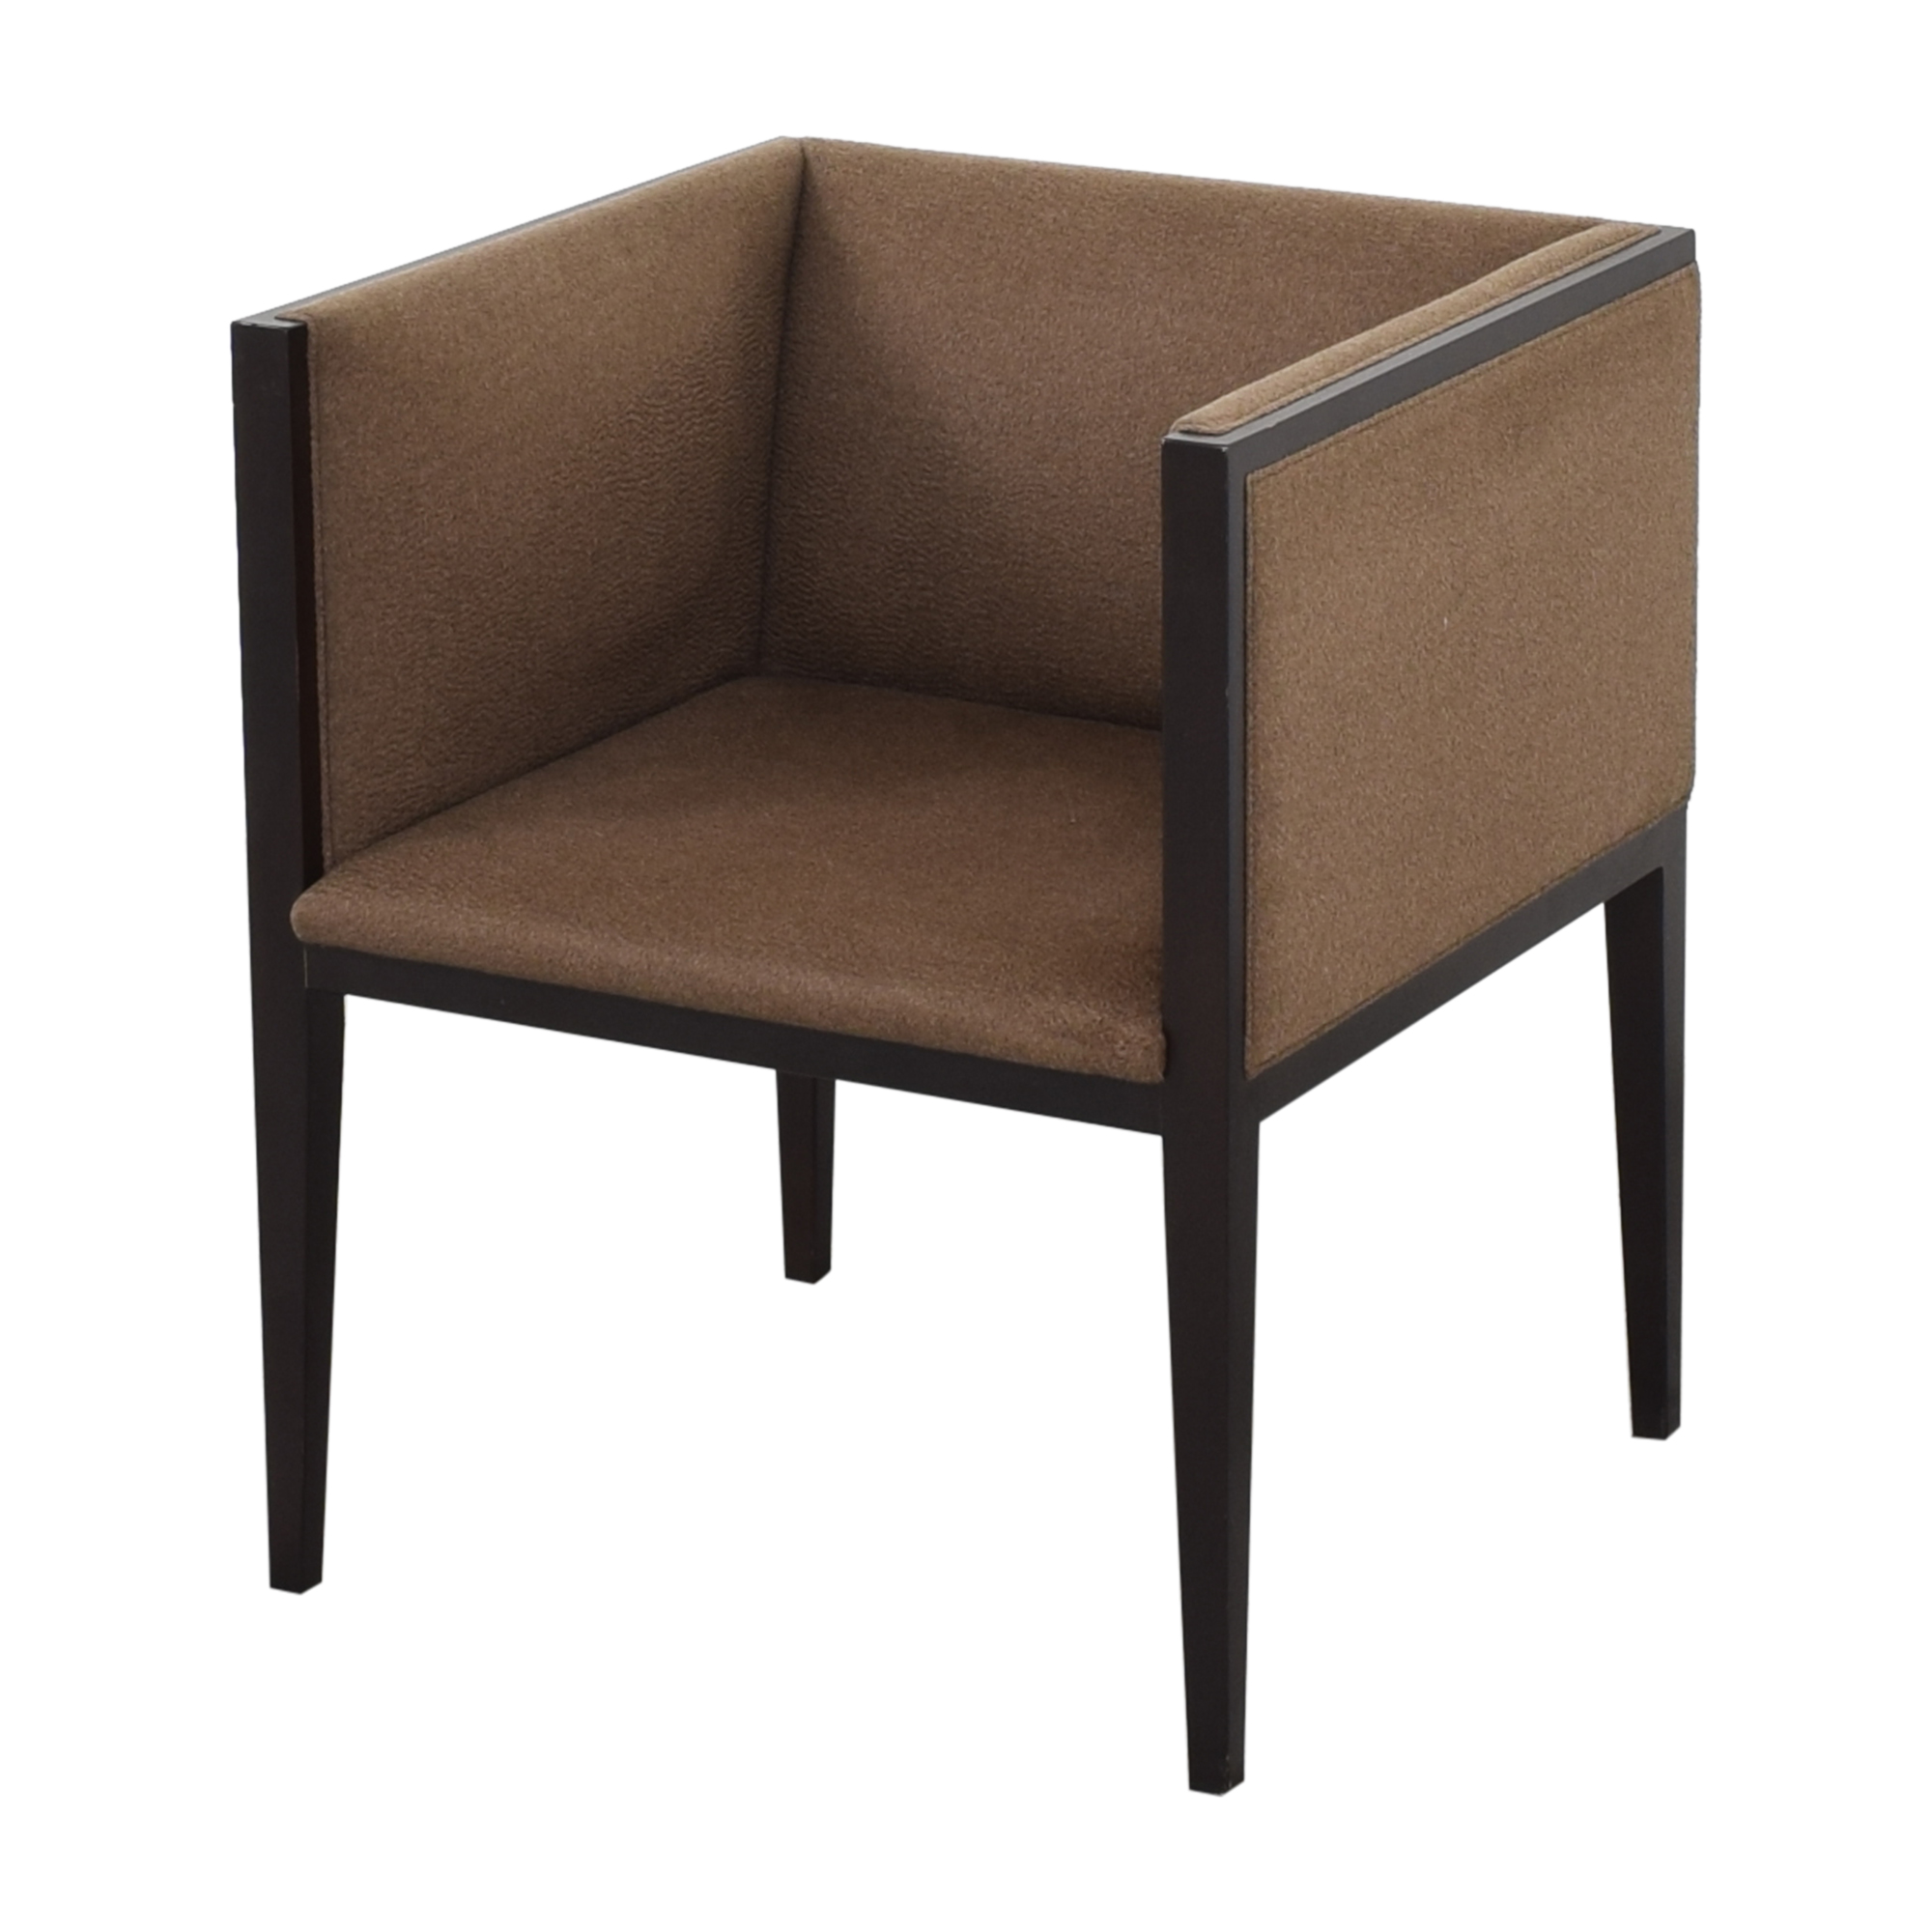 Hudson Furniture & Bedding Hudson Furniture & Bedding Tuxedo Accent Chair discount